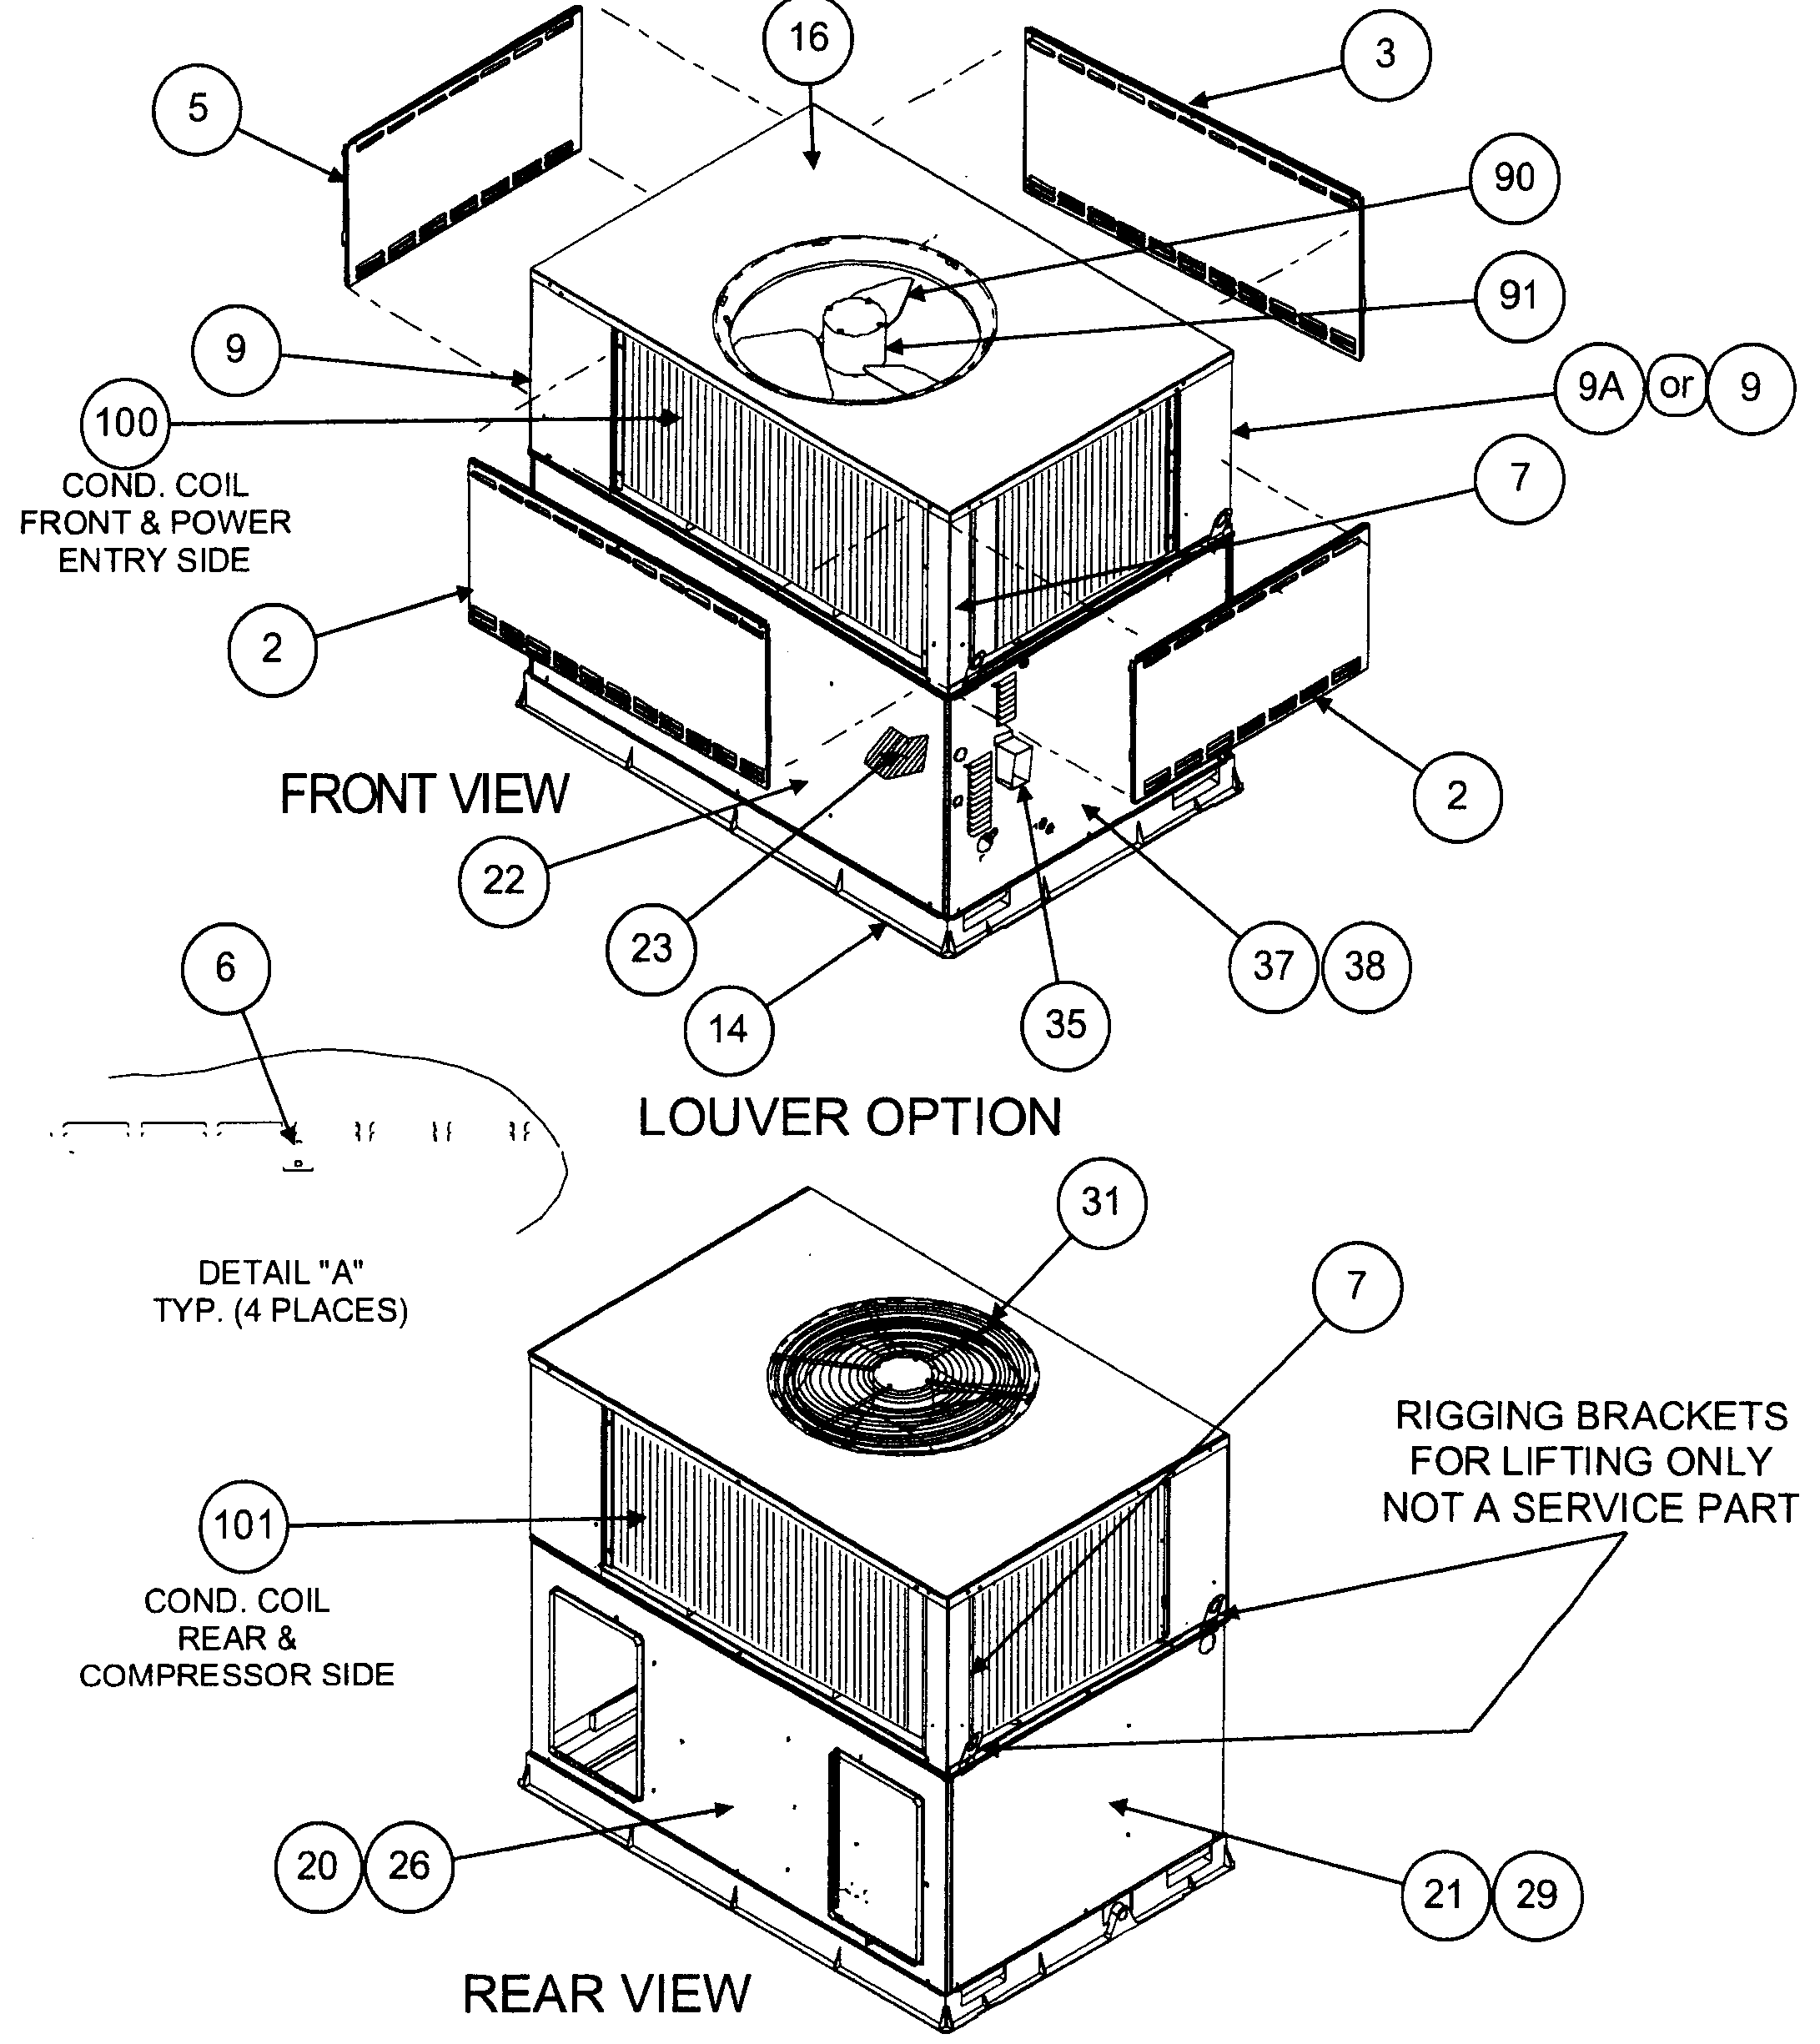 Carrier 48XZN048130300 front view/louver option/rear view diagram